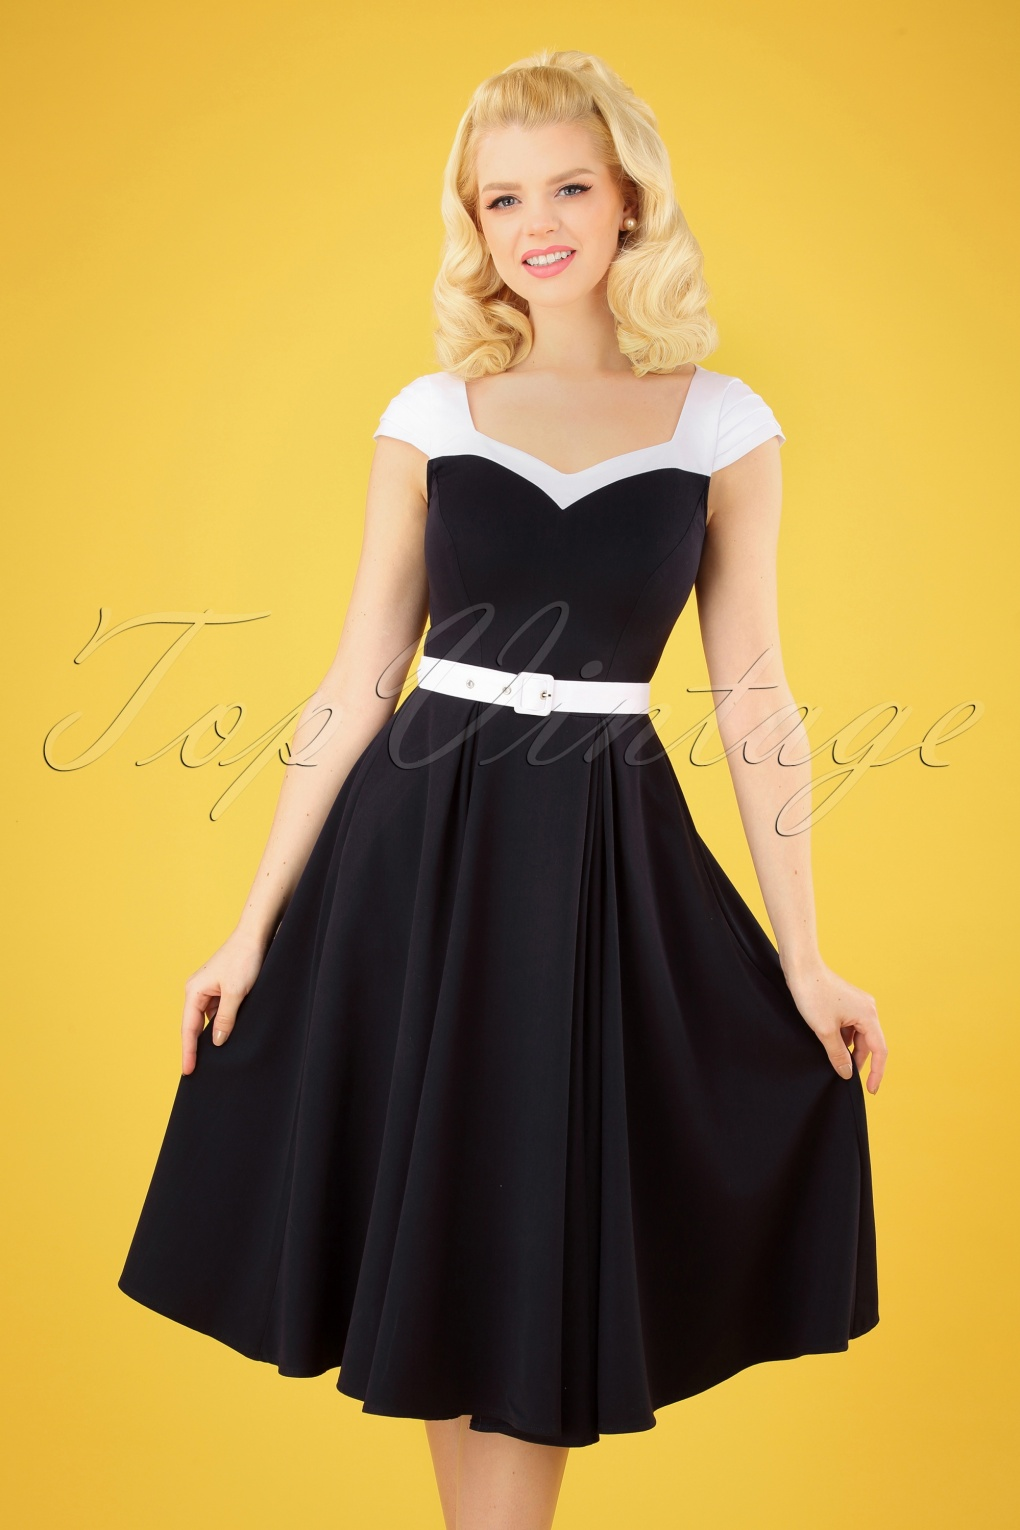 Vintage Cruise Outfits, Vacation Clothing 50s Merryweather Swing Dress in Navy and White £81.93 AT vintagedancer.com